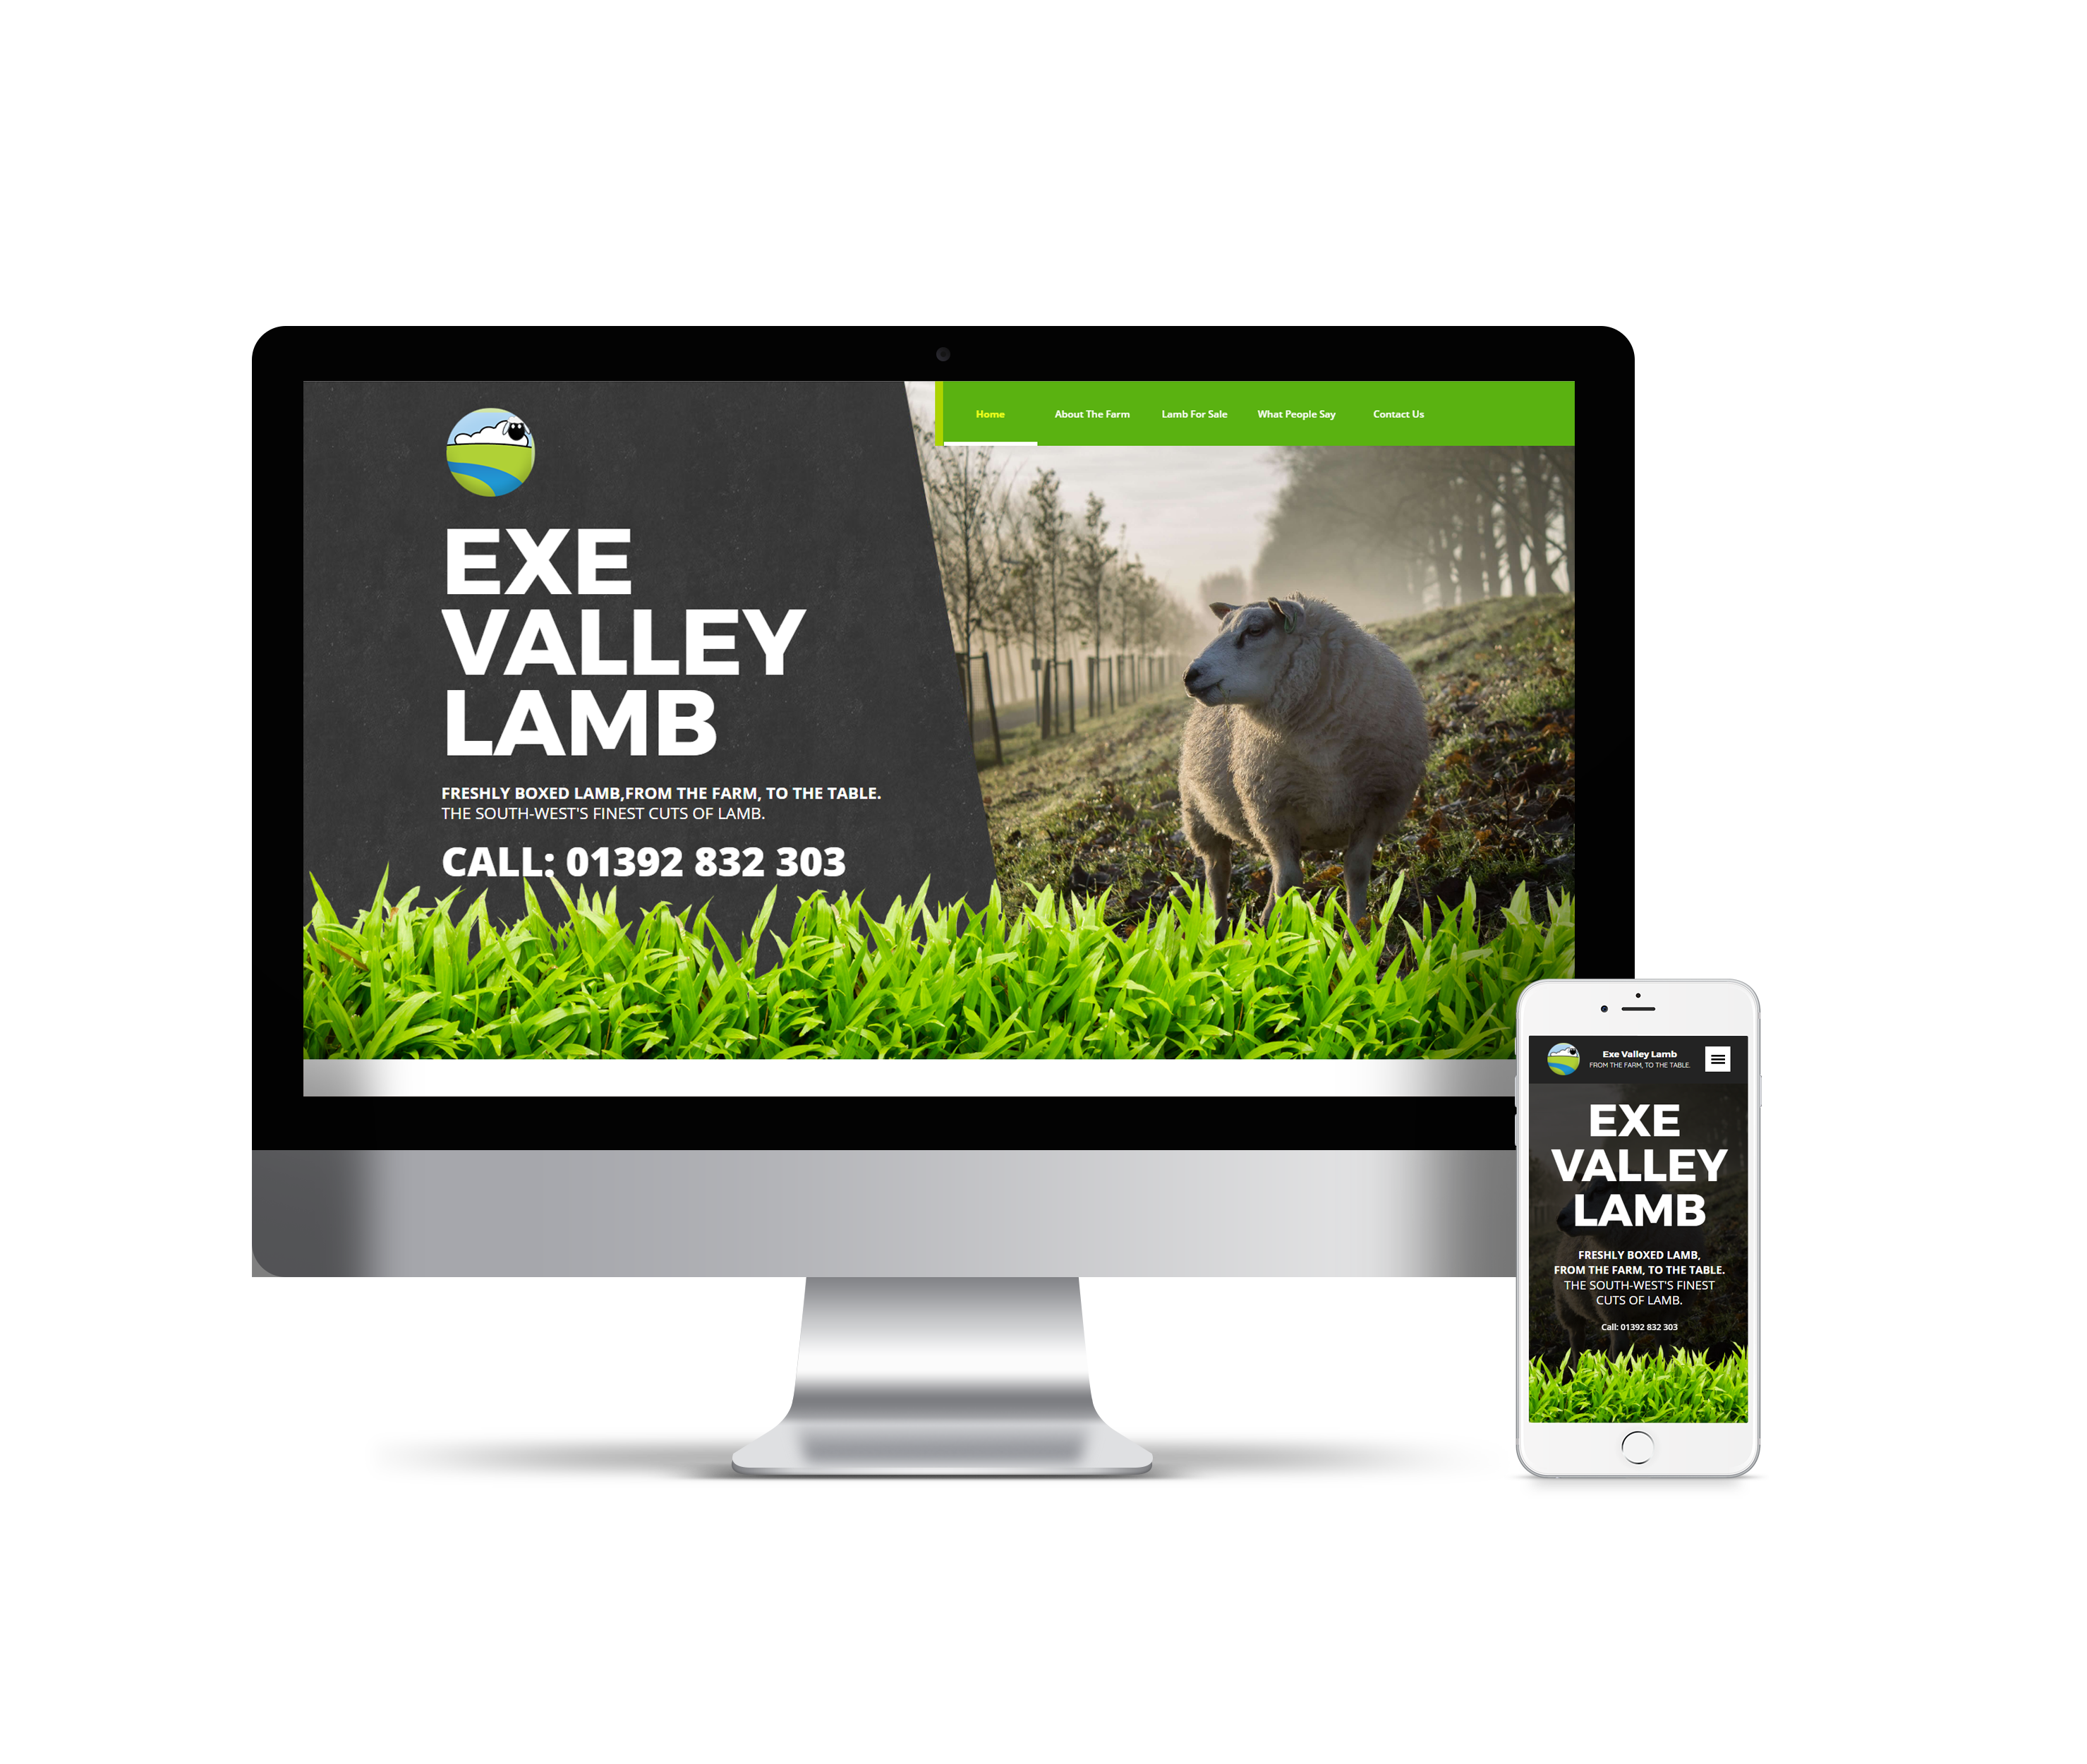 Exe Valley lamb